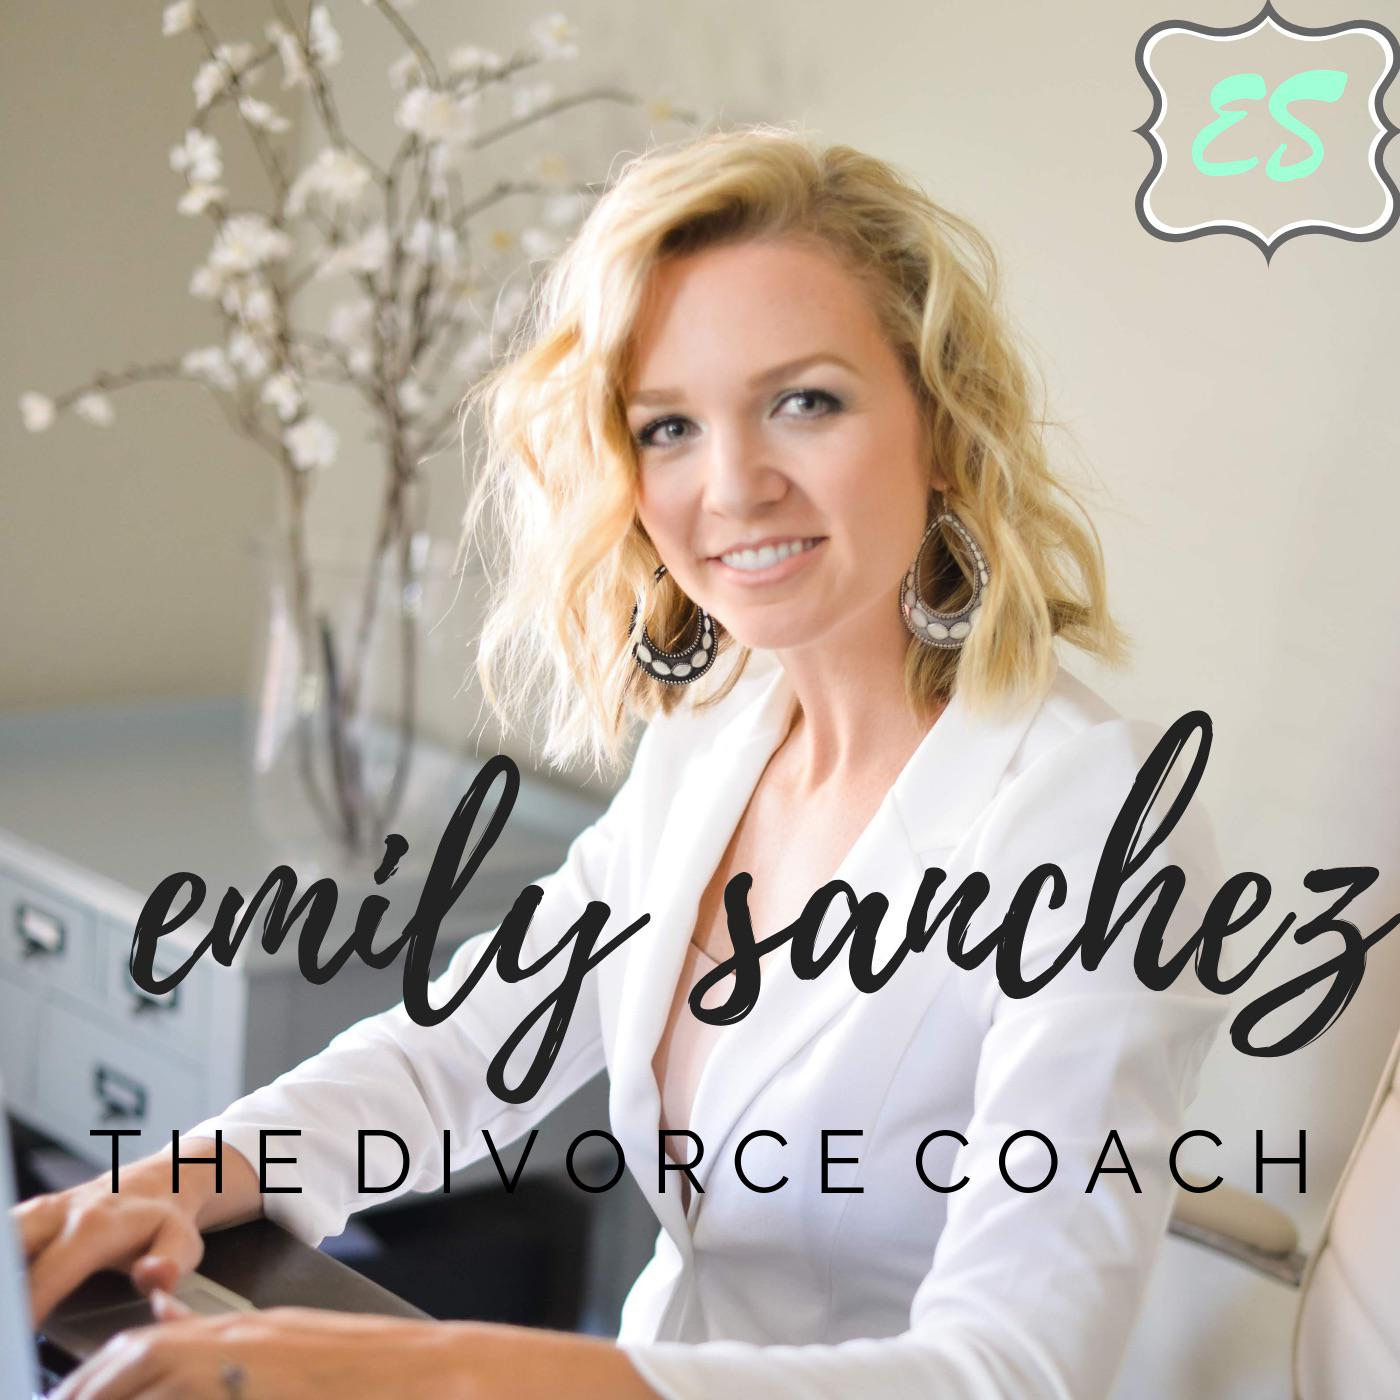 LDS Dating coach